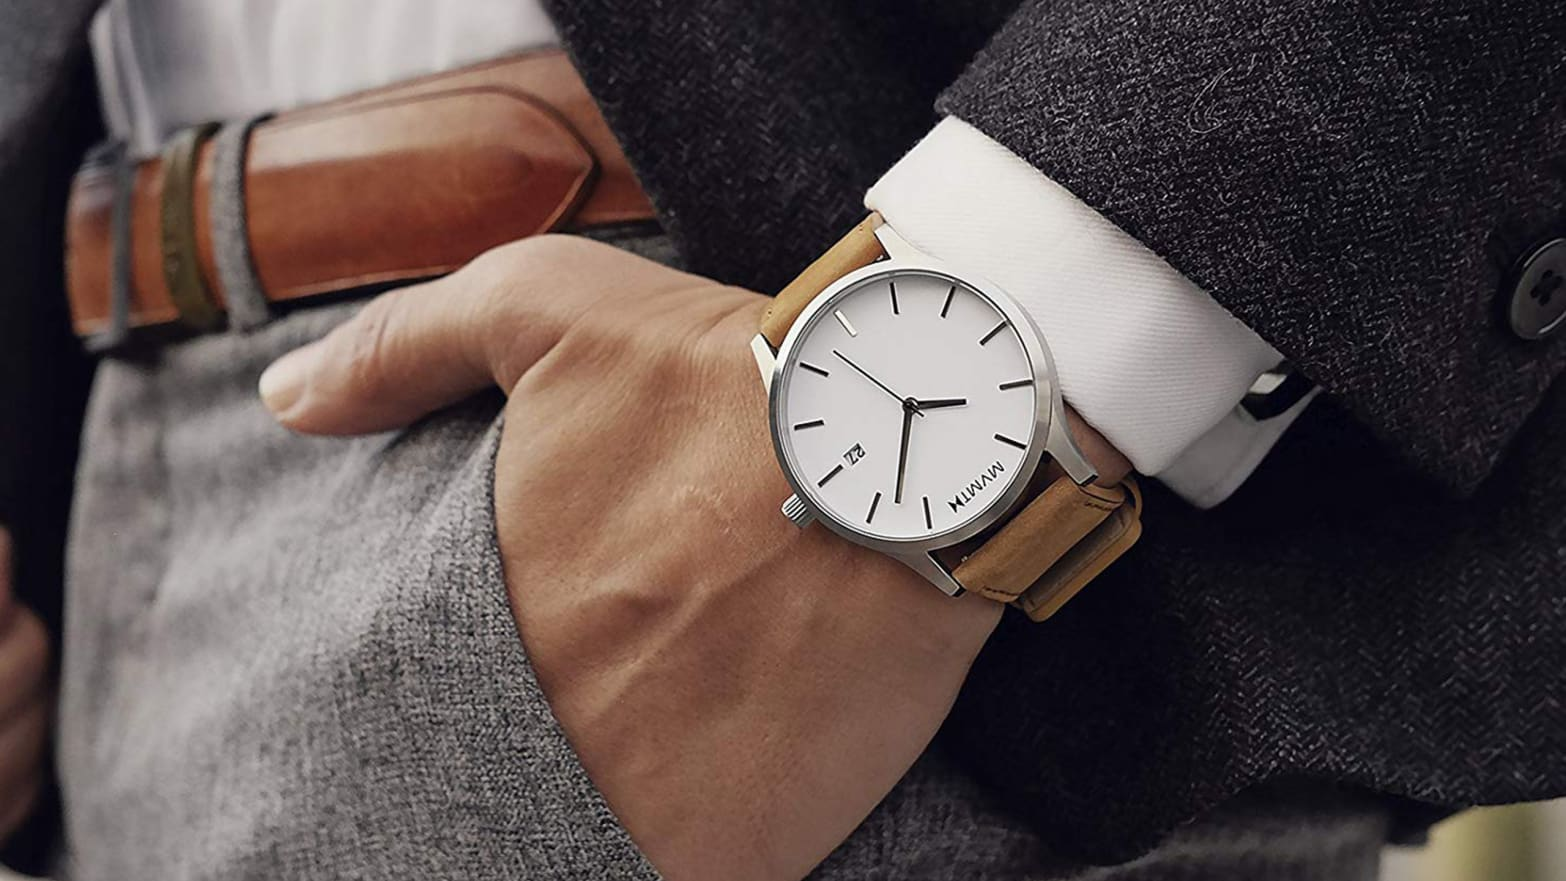 Shop Elegant Watches From Top Brands Like Seiko, Victorinox, Fossil, and More